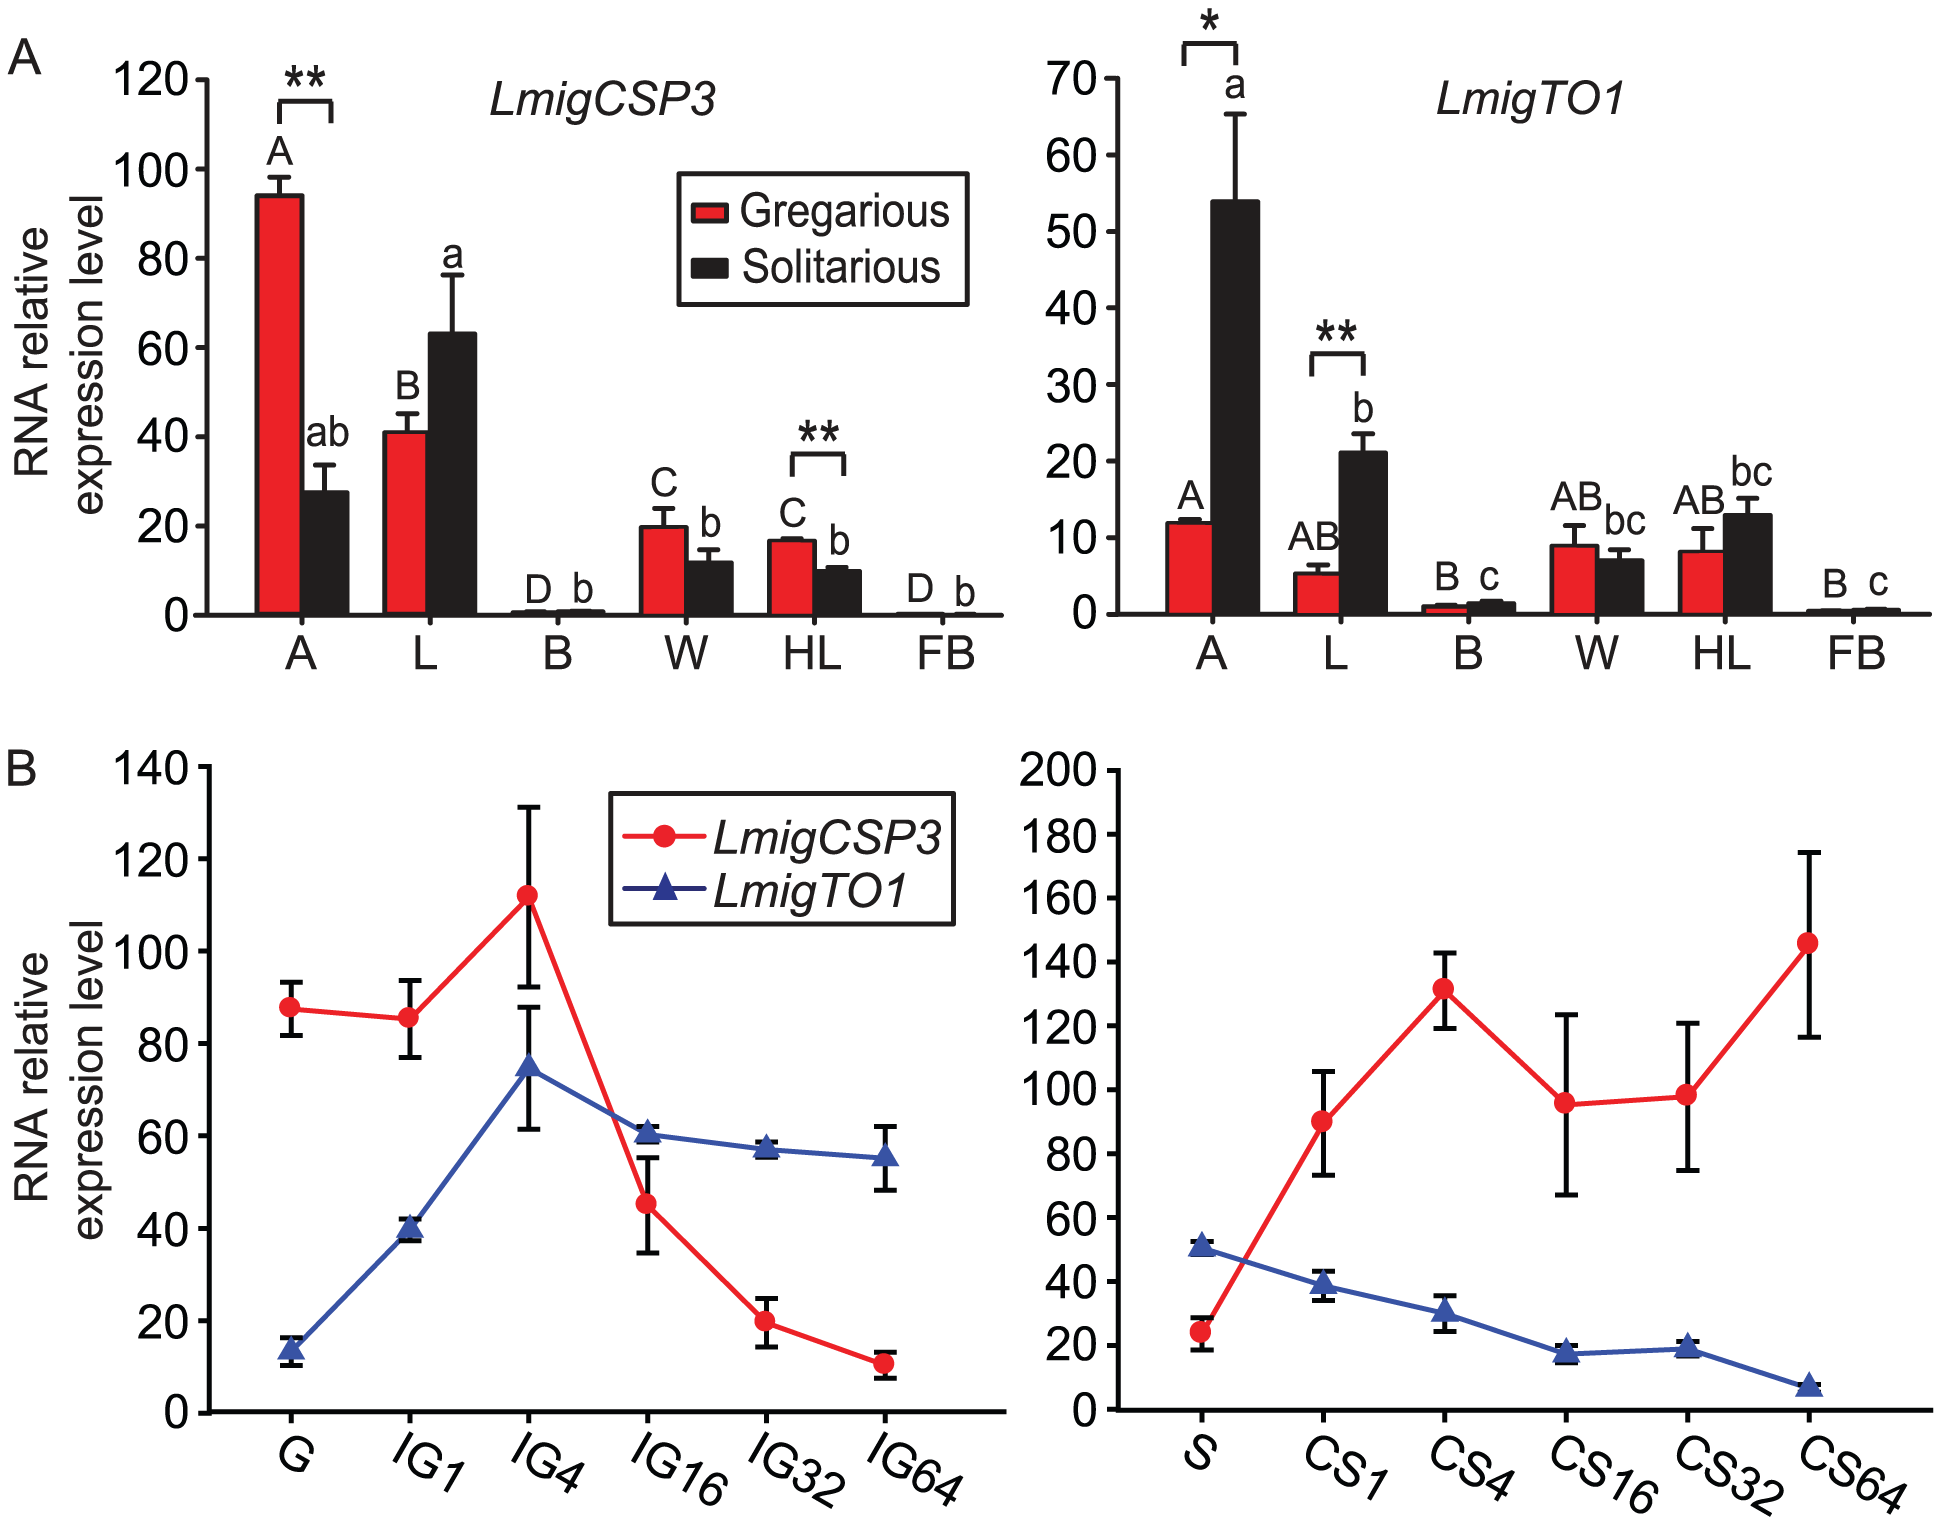 The tissue-specific and time course expression of <i>LmigCSP3</i> and <i>LmigTO1</i> genes in fourth-instar nymphs.